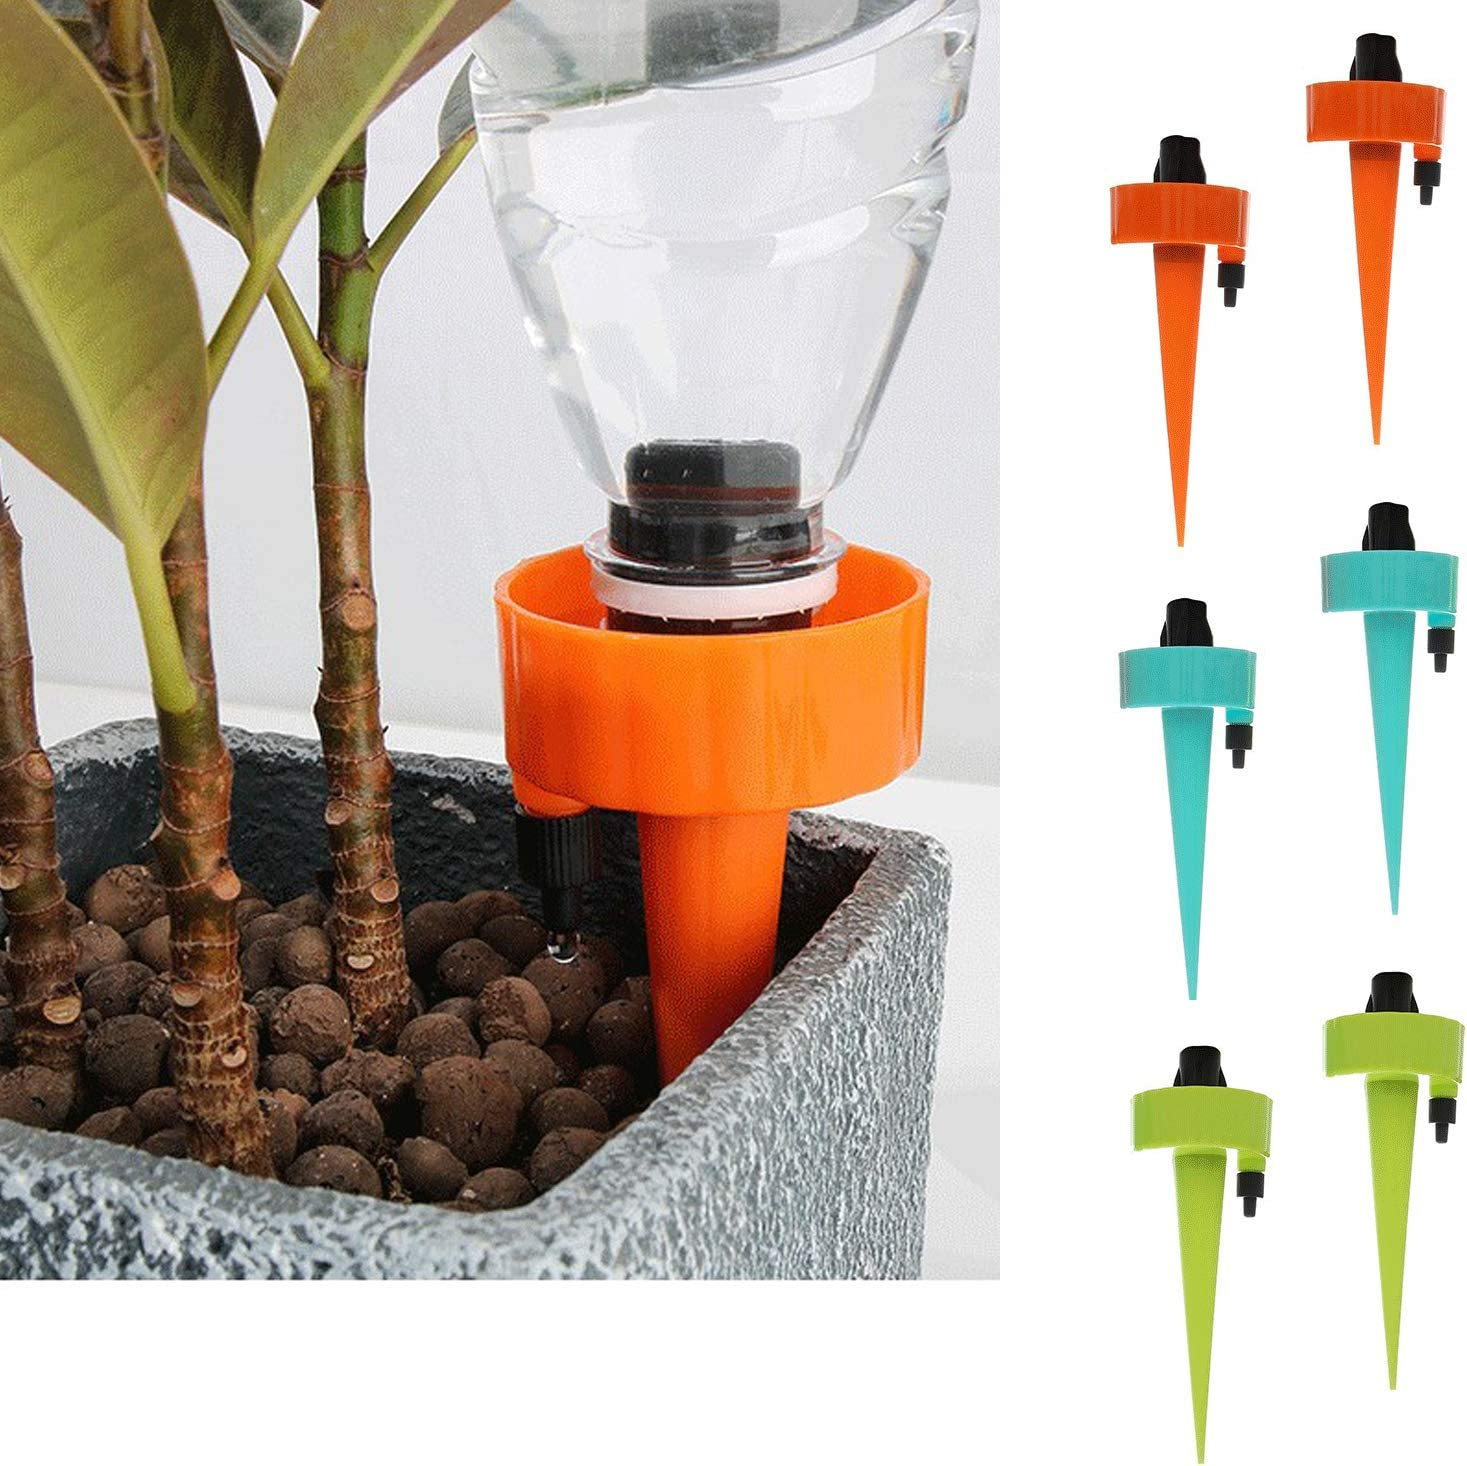 Self Watering Tools, Plant Waterer, Plant Watering System, Pot Plants Watering Devices, Plant Watering Lazy Way, Water The Flowers,Planted Machine,Garden Tools(6 pcs)